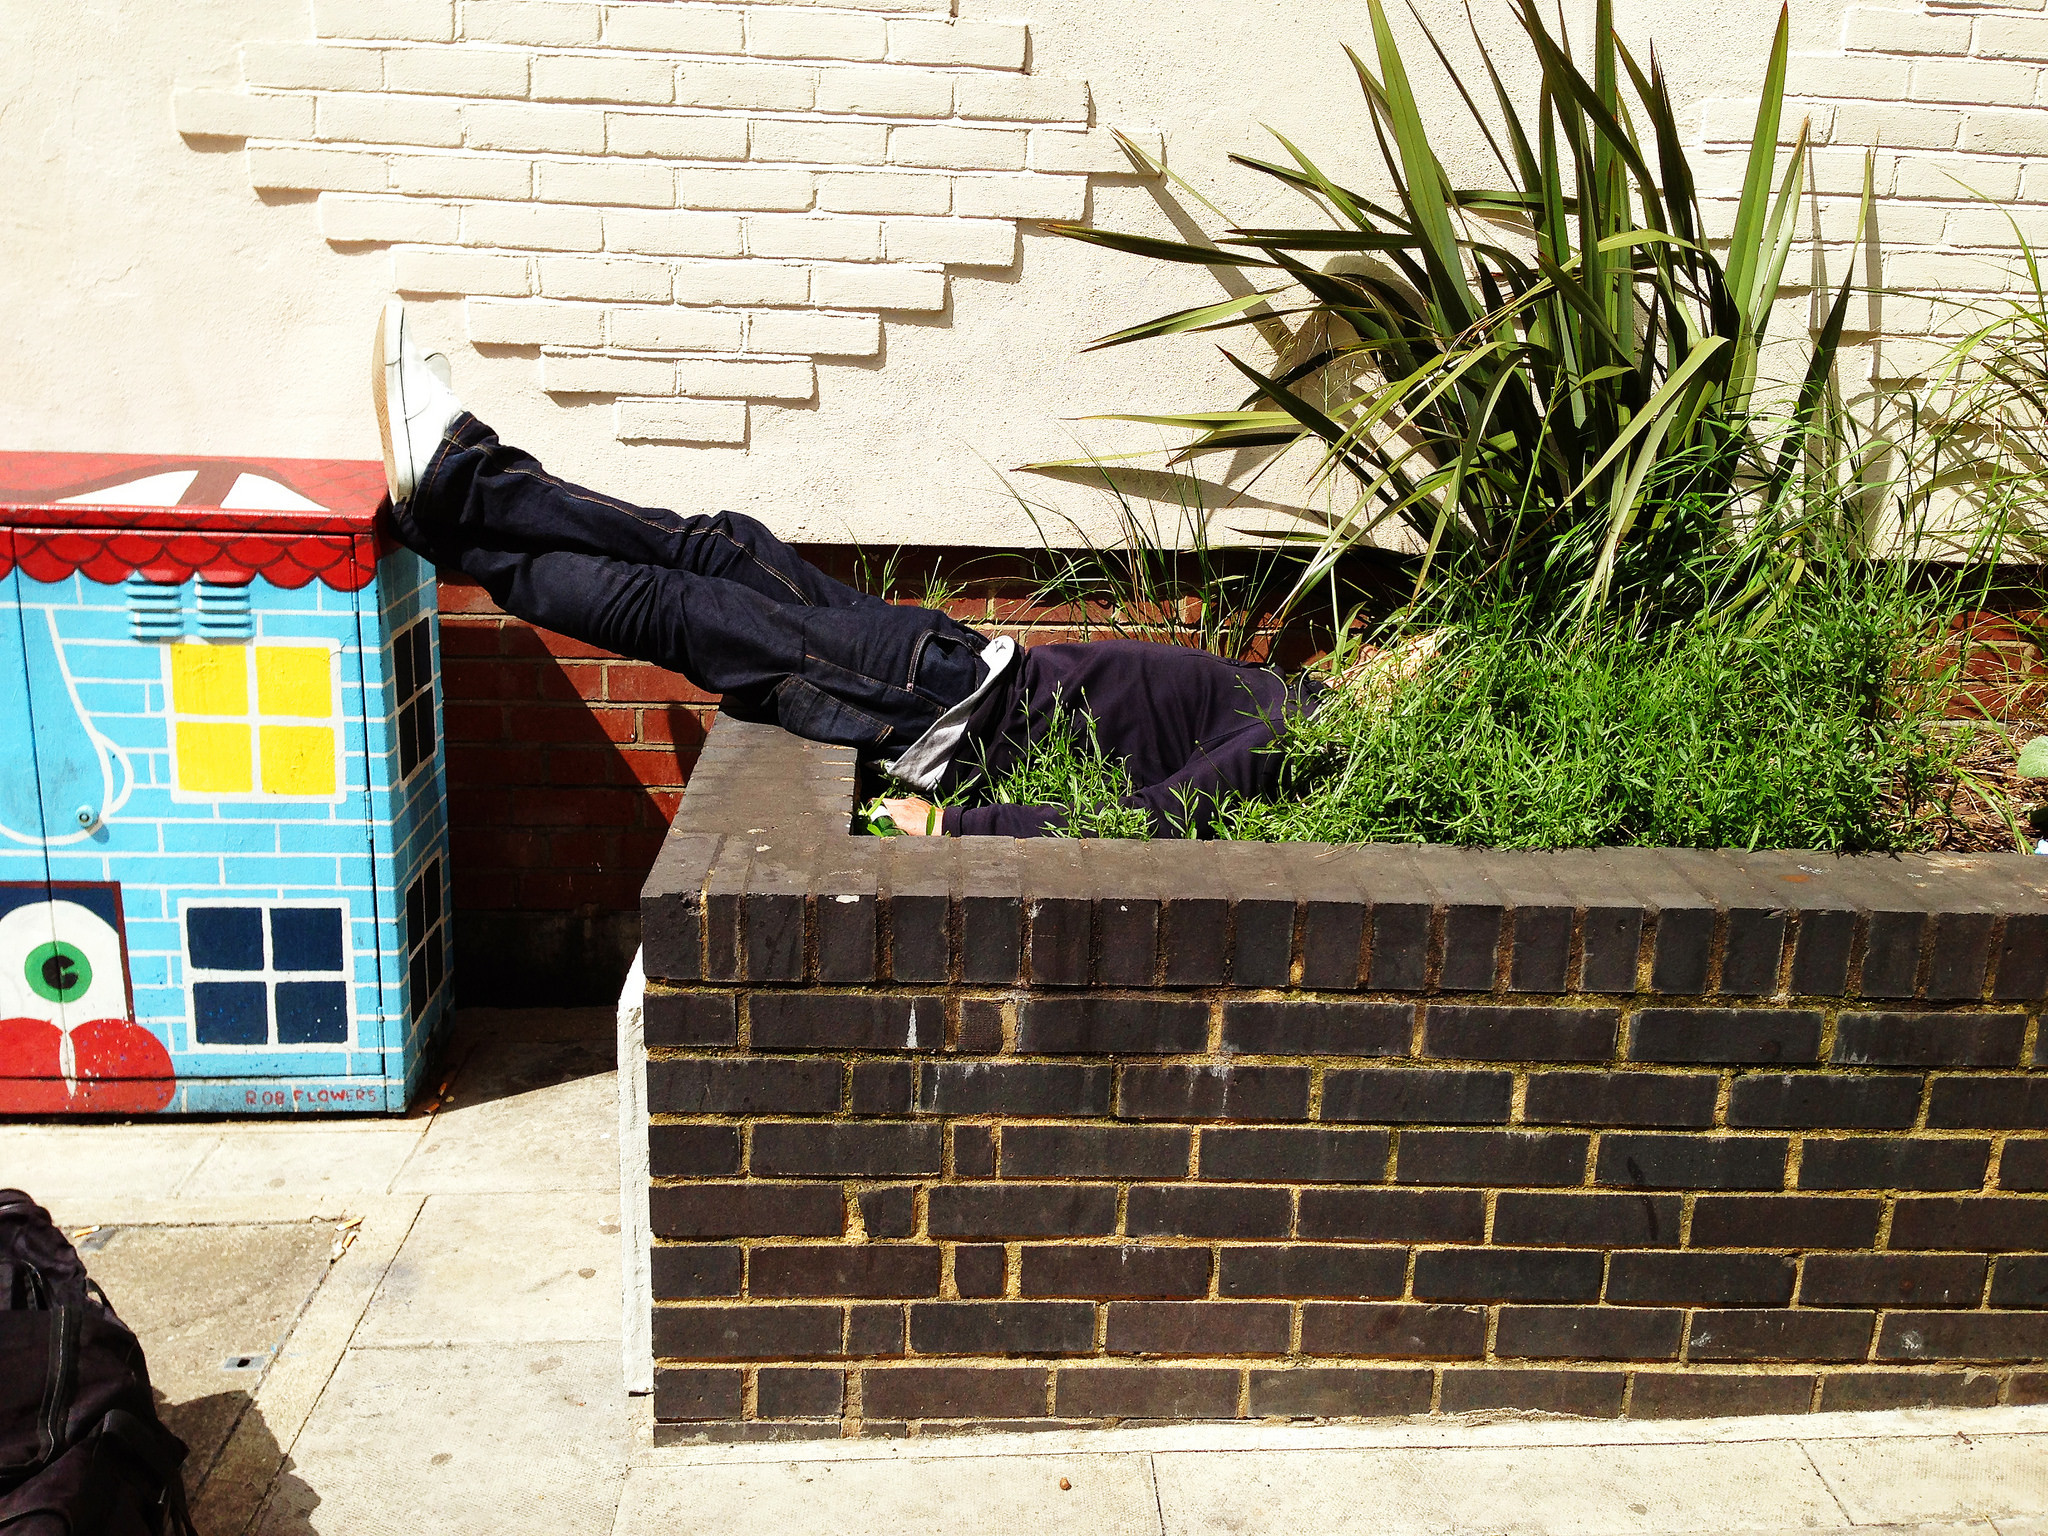 A man planking in some plants.